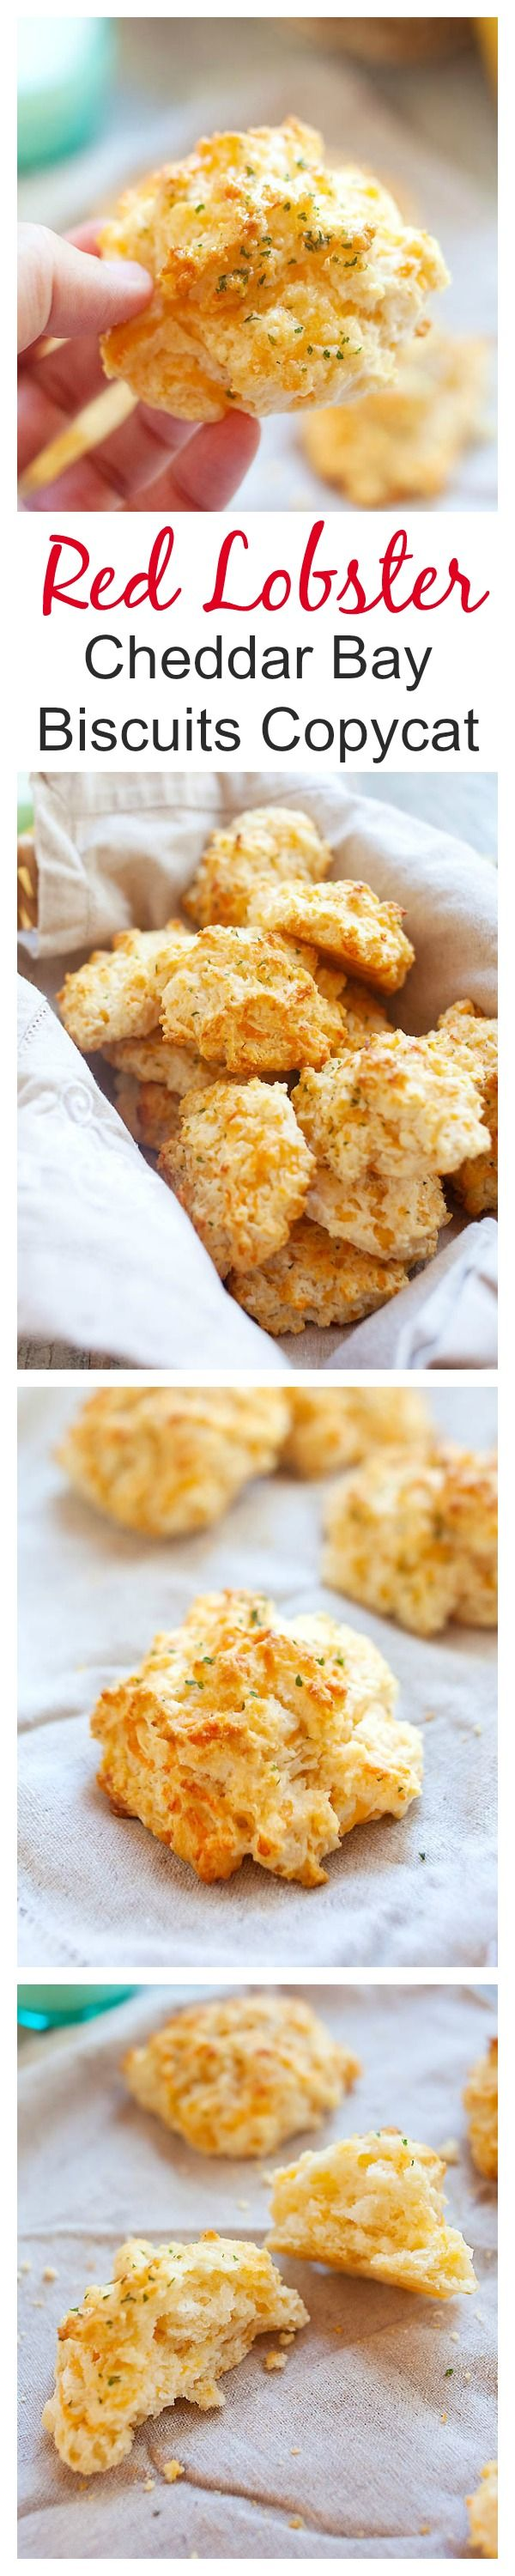 Red Lobster cheddar bay biscuits copycat recipe, close to the original Red Lobster cheddar bay biscuits. Crumbly, cheesy, and the best biscuits ever   rasamalaysia.com